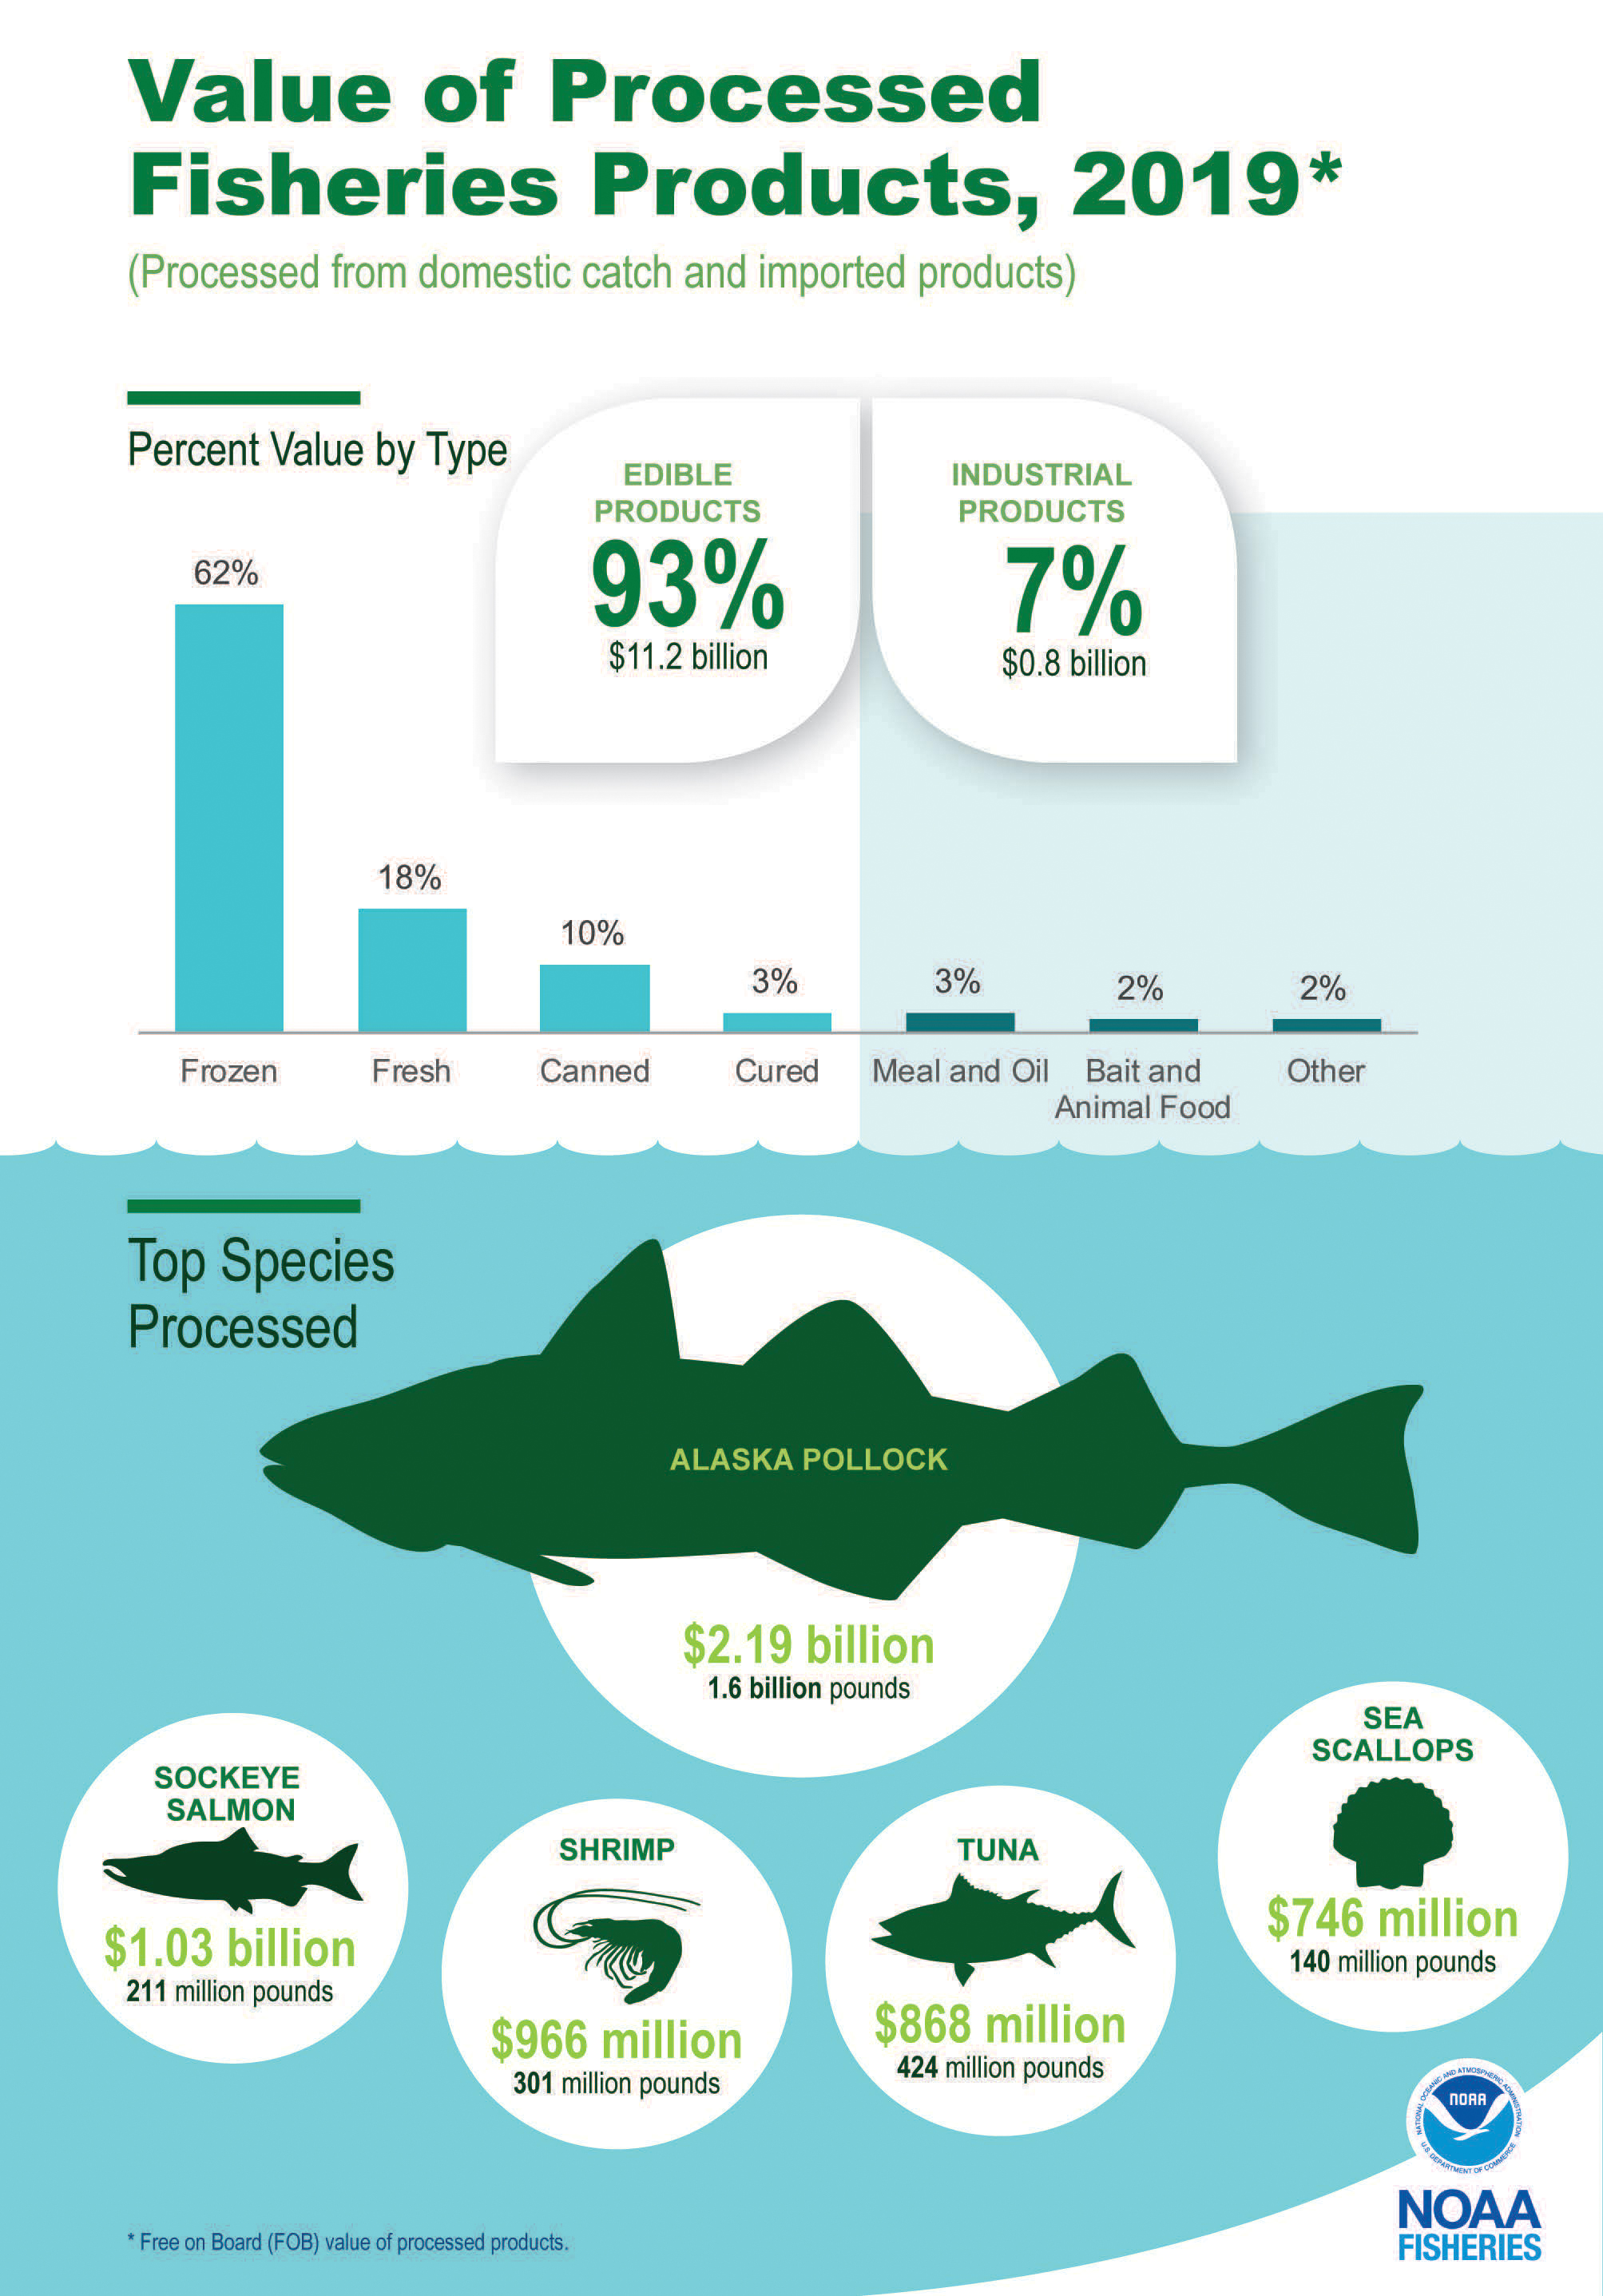 Graphic illustrating the value of processed fisheries products for 2019 and top species processed (including Alaska pollock, sockeye salmon, shrimp, tuna, and sea scallops).